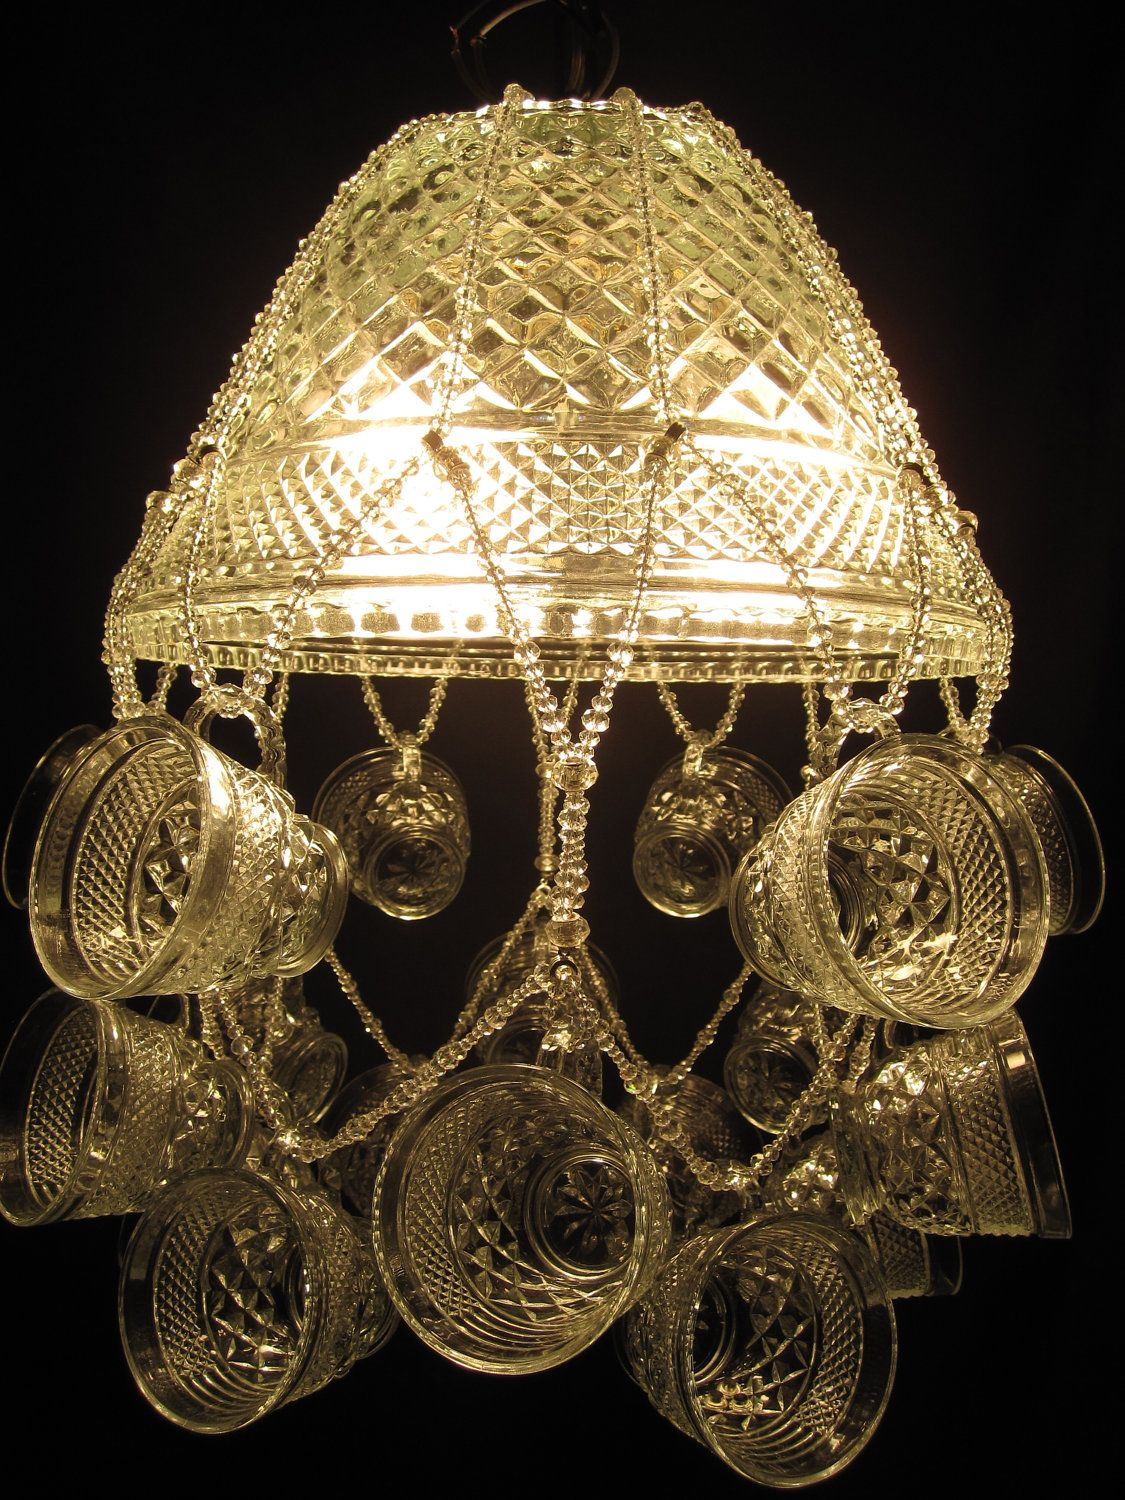 Gorgeous wexford punch bowl chandelier with 18 dangling punch cups gorgeous wexford punch bowl chandelier with 18 dangling punch cups arubaitofo Choice Image